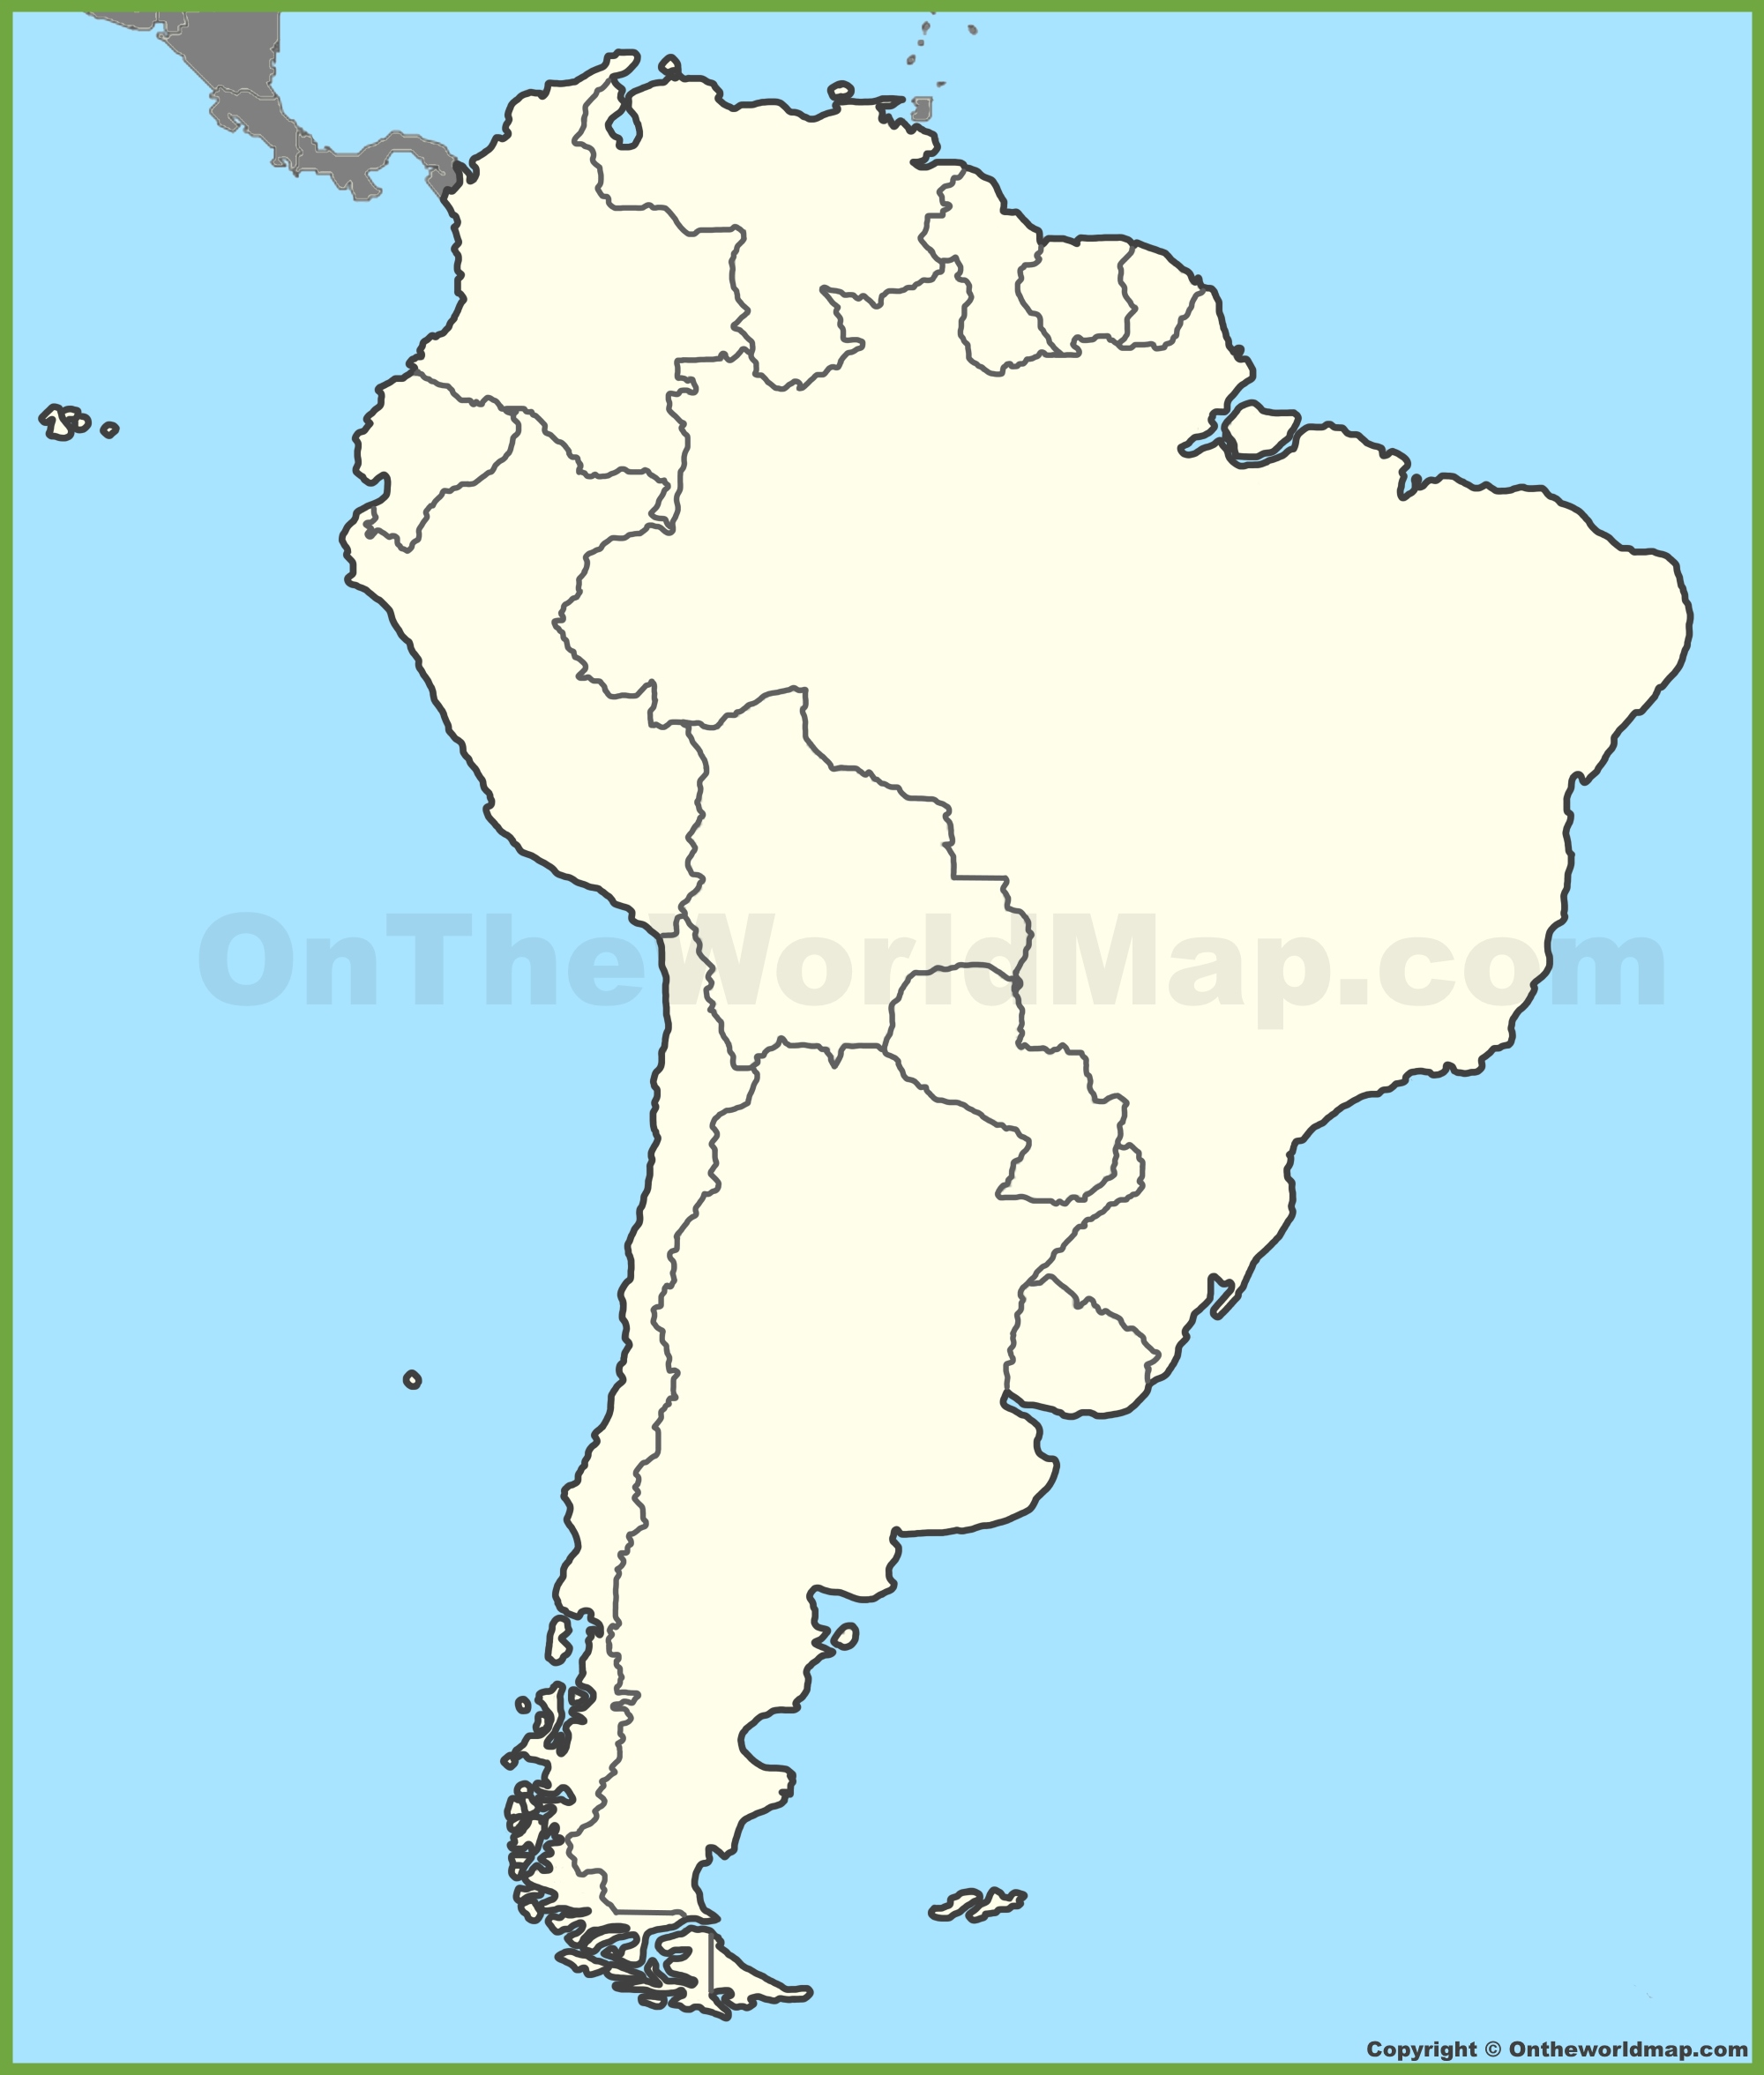 South America Maps | Maps of South America - OnTheWorldMap.com